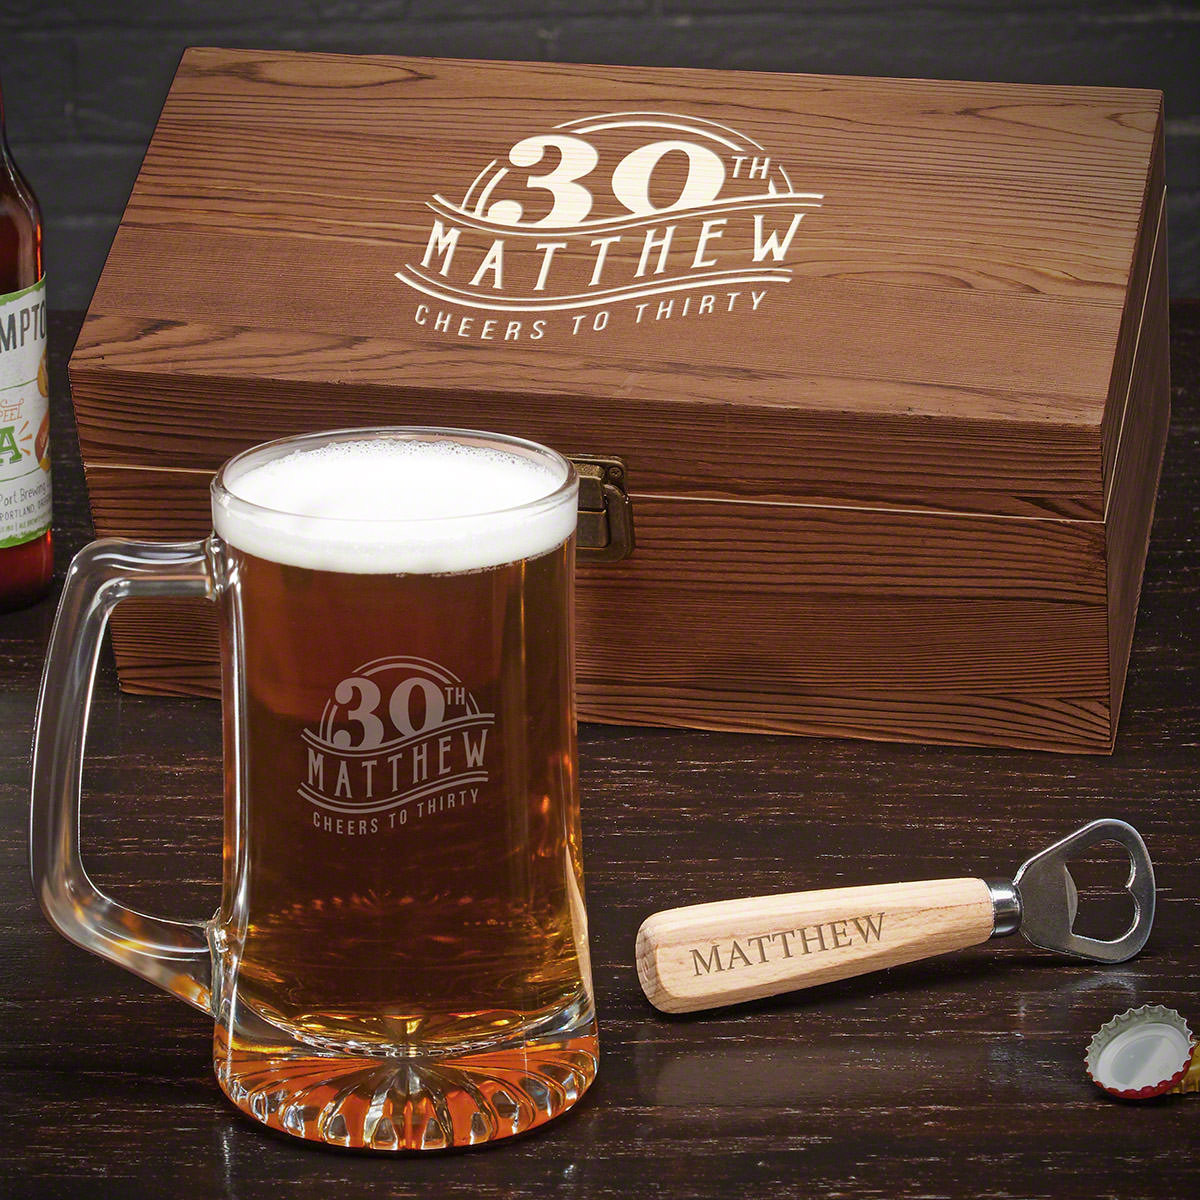 Turning 30 is a big deal, and the new 30-year-old in your life deserves a great gift. This customized beer mug set is one of the best 30th birthday gift ideas there is. Included in the set is a wooden box, beer mug, and bottle opener. The sturdy beer mug #mug